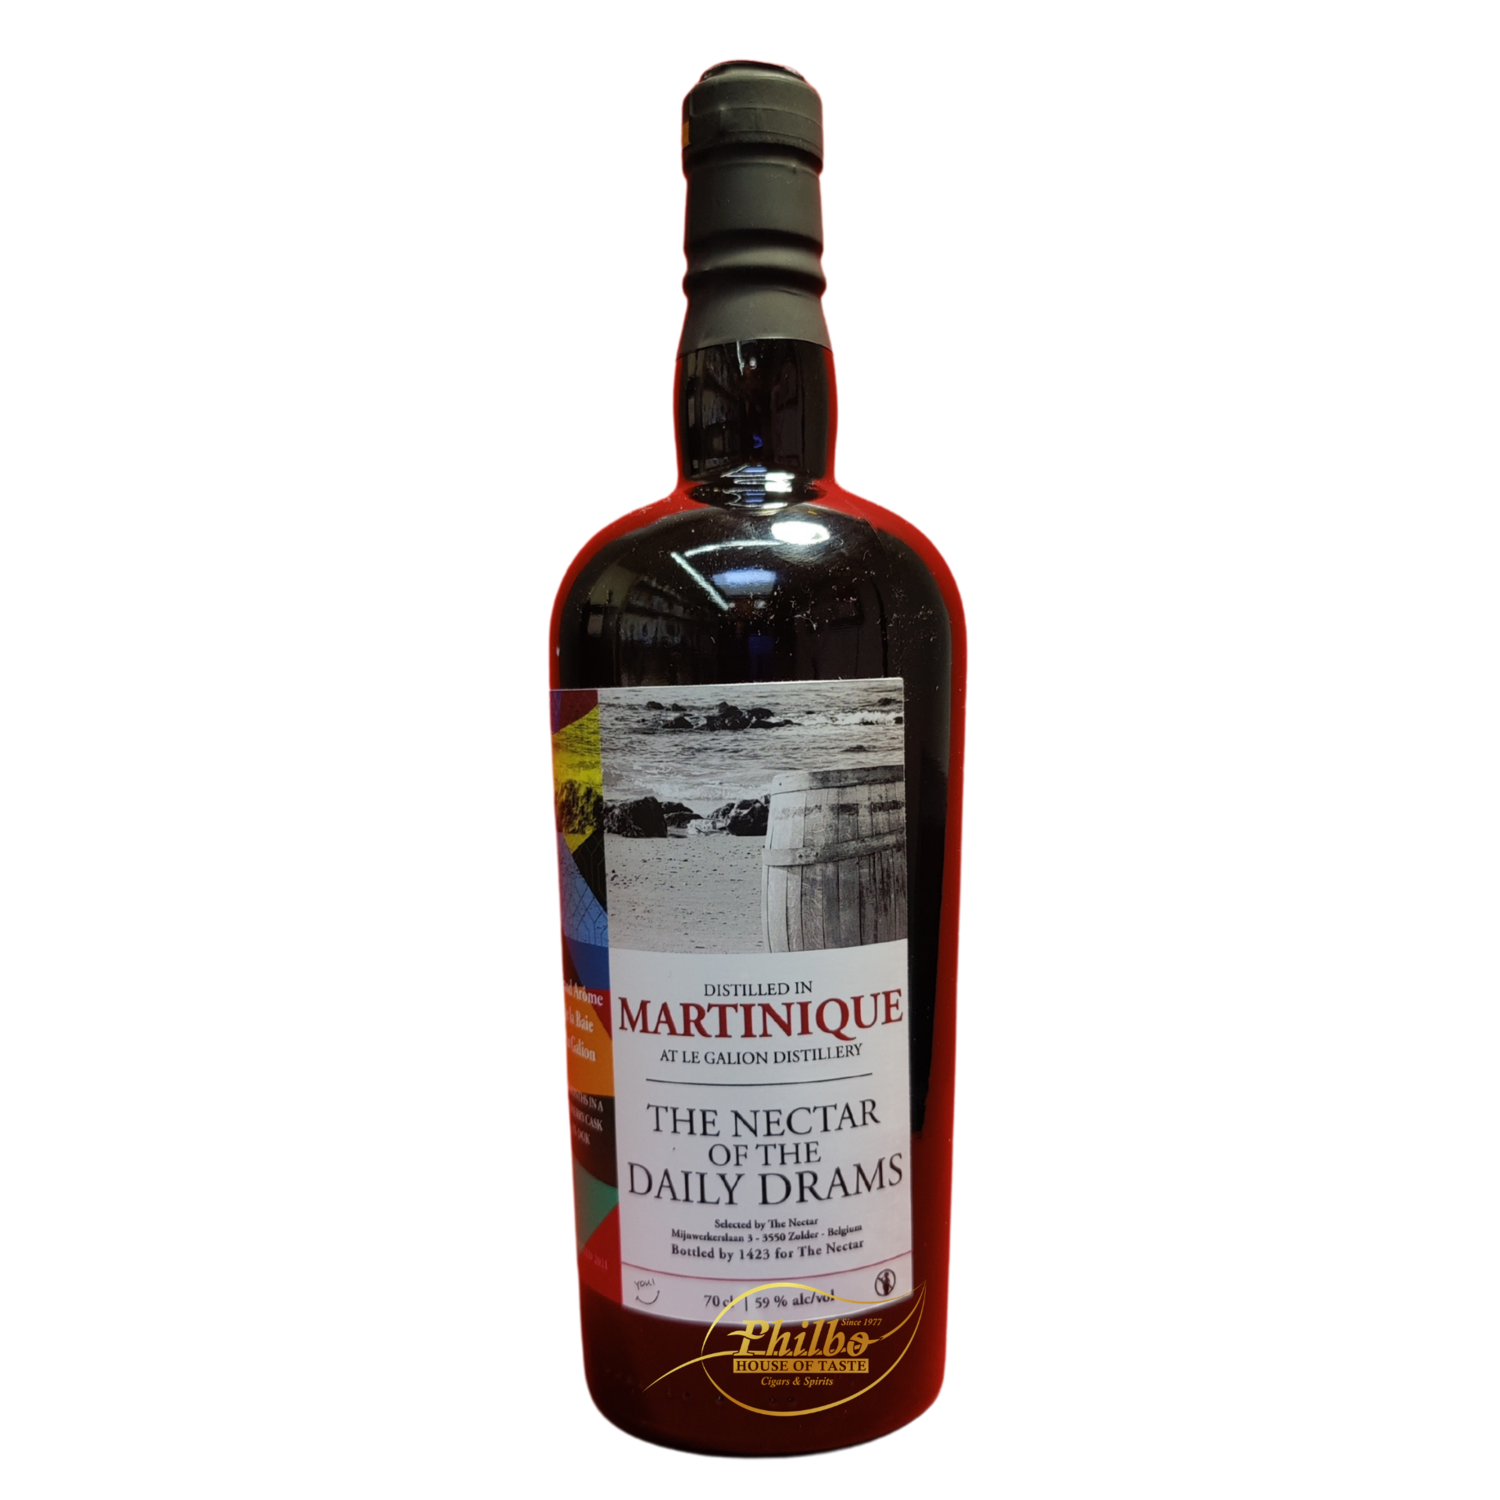 LE GALION MARTINIQUE 2020 NECTAR OF THE DAILY DRAM EX-DOK PX-CASK 59% 70CL